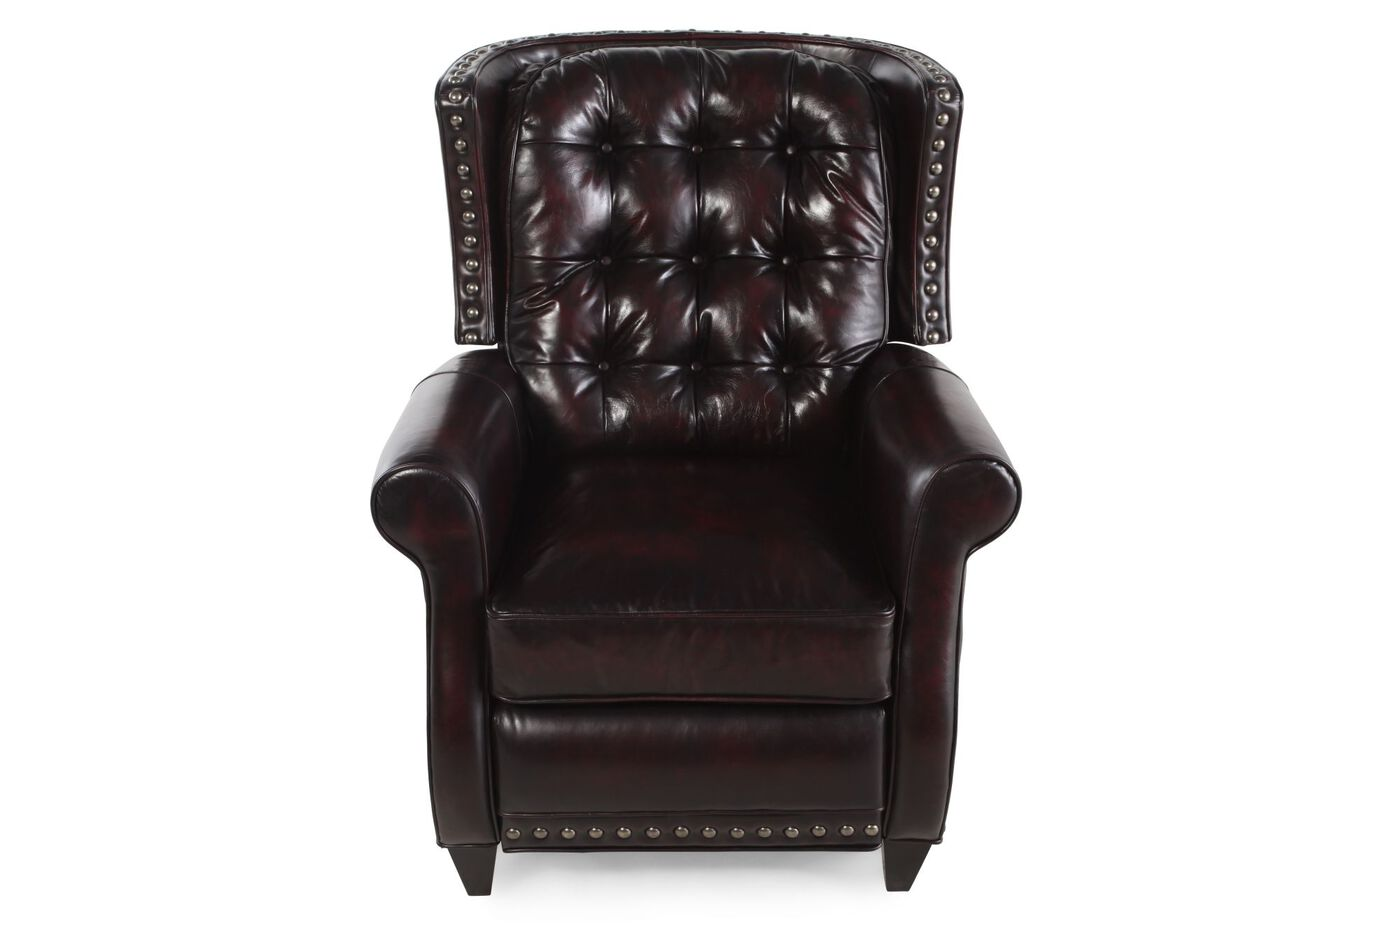 Bernhardt Brown Leather Pierce Recliner Mathis Brothers